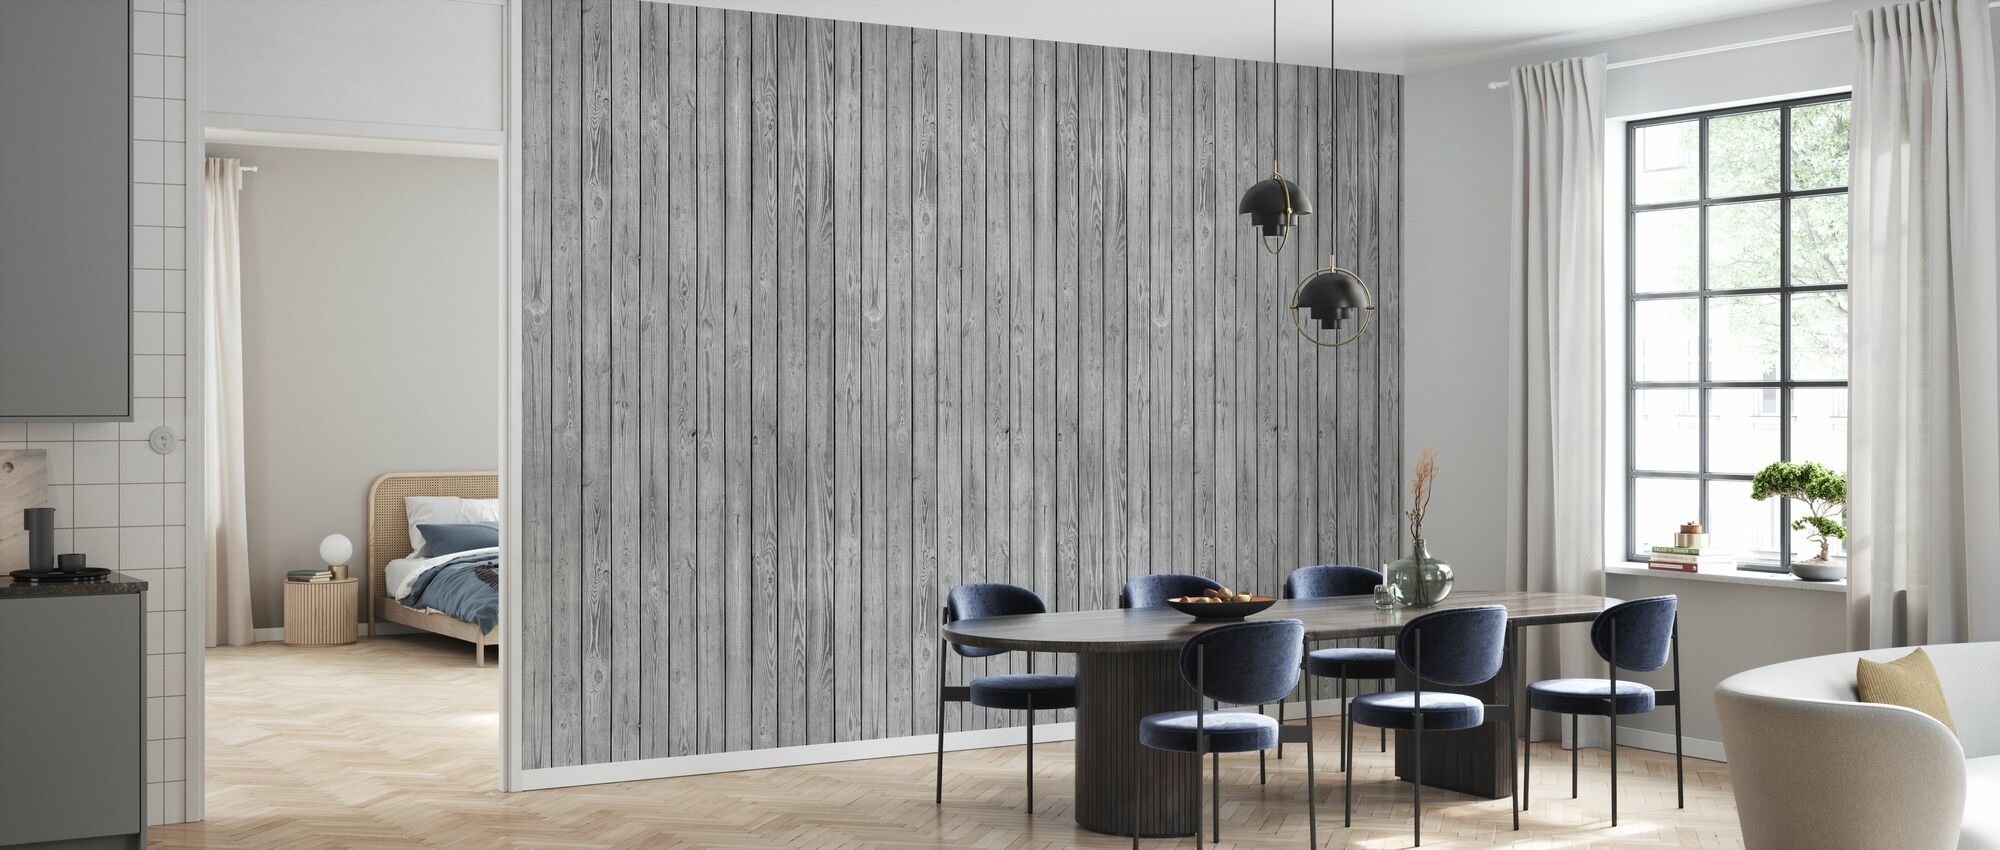 Wooden Plank Wall - Grey - Wallpaper - Kitchen